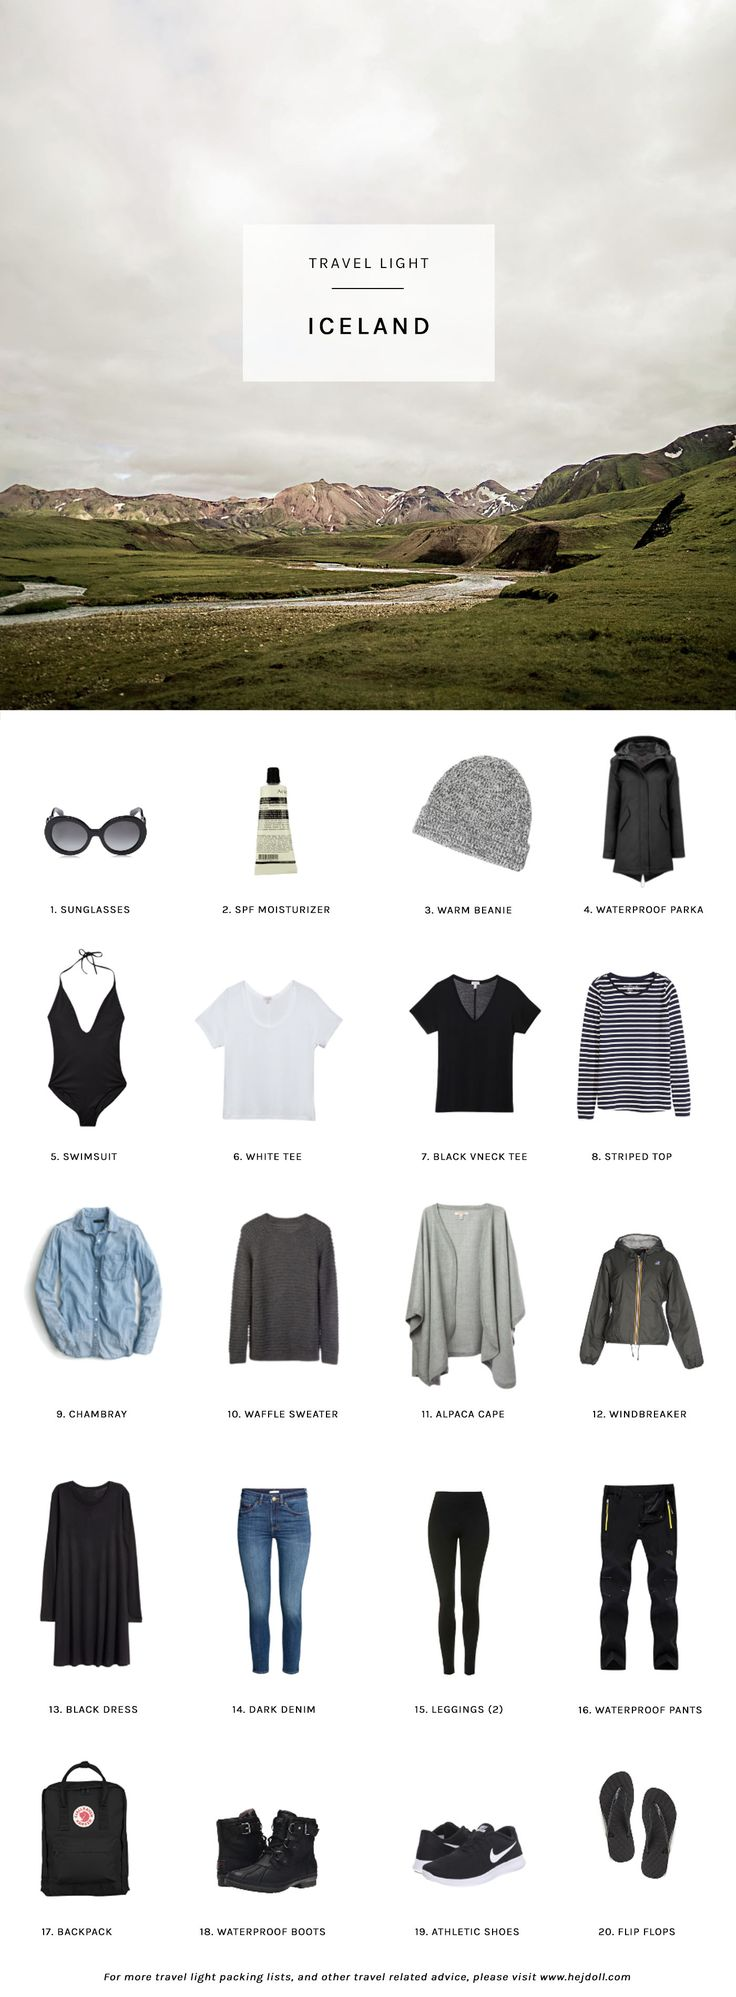 Travel Light - Pack for Iceland in the Summer. 20 items, 10 outfits, 1 carry-on.